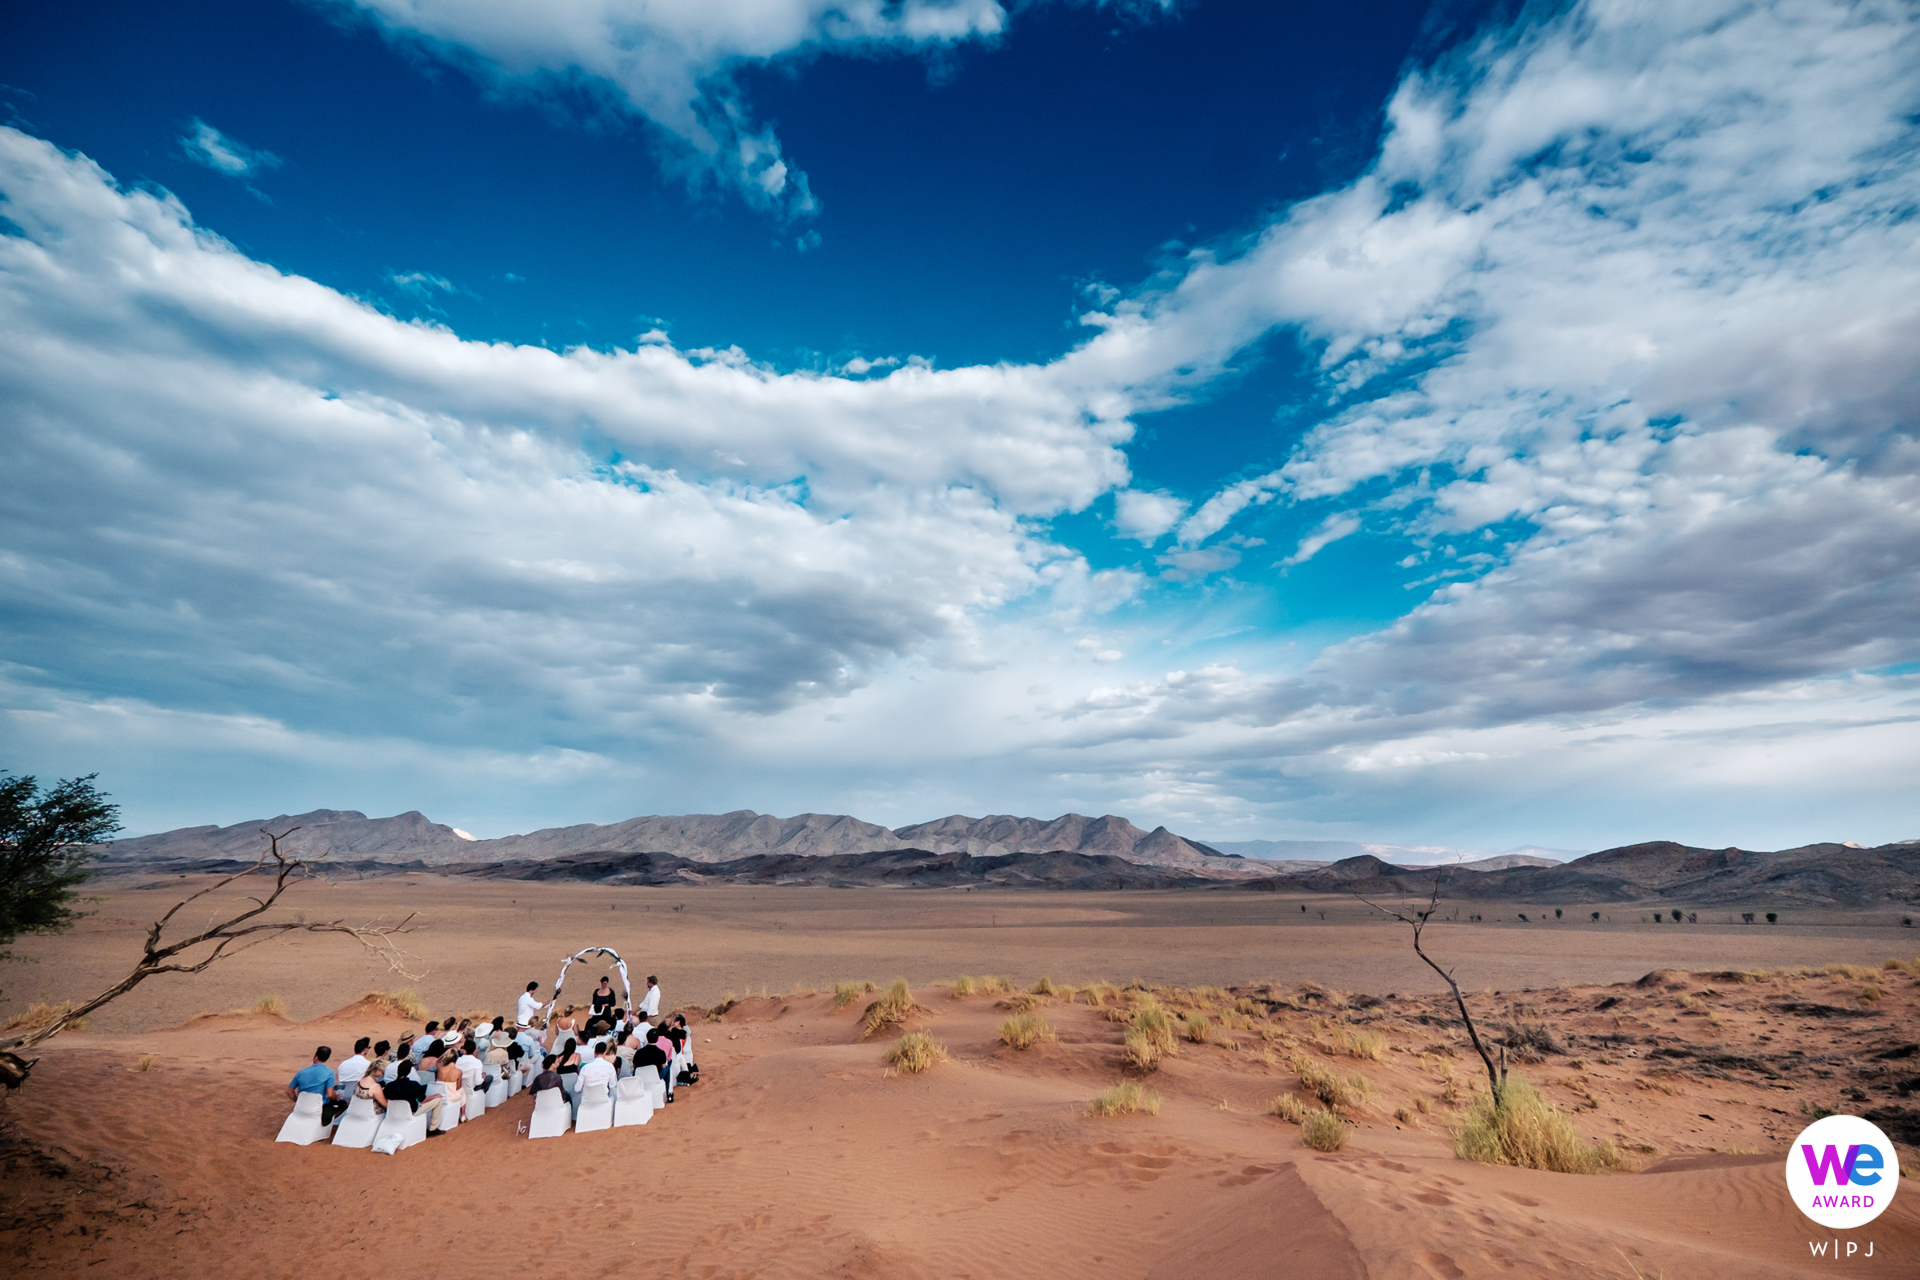 Namib Desert, Namibia Elopement Story Photography | The wedding ceremony took place overlooking the vast openness of the desert